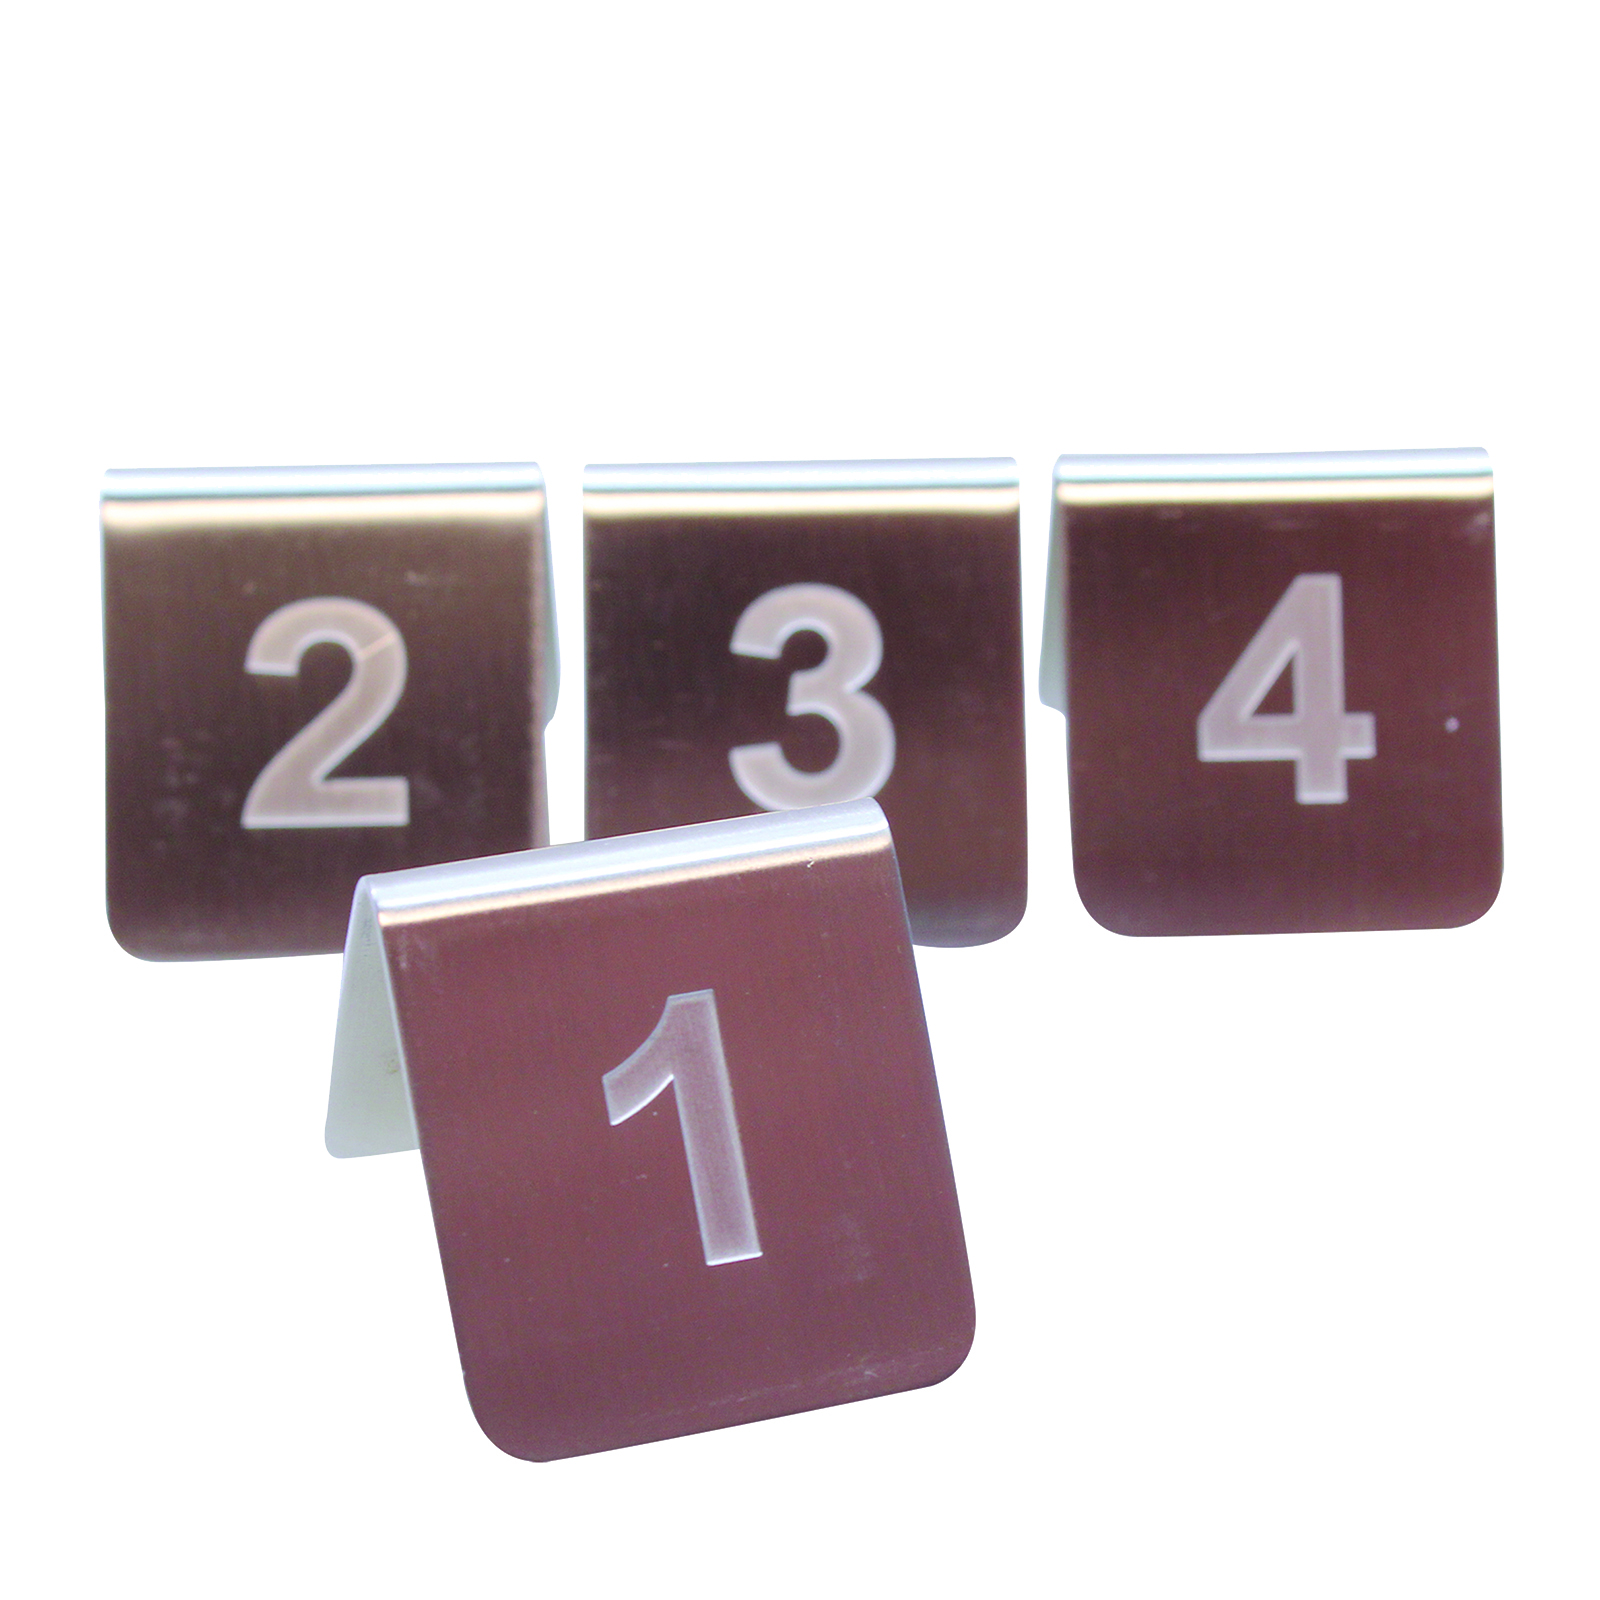 TableCraft Products PT125 tabletop sign, tent / number